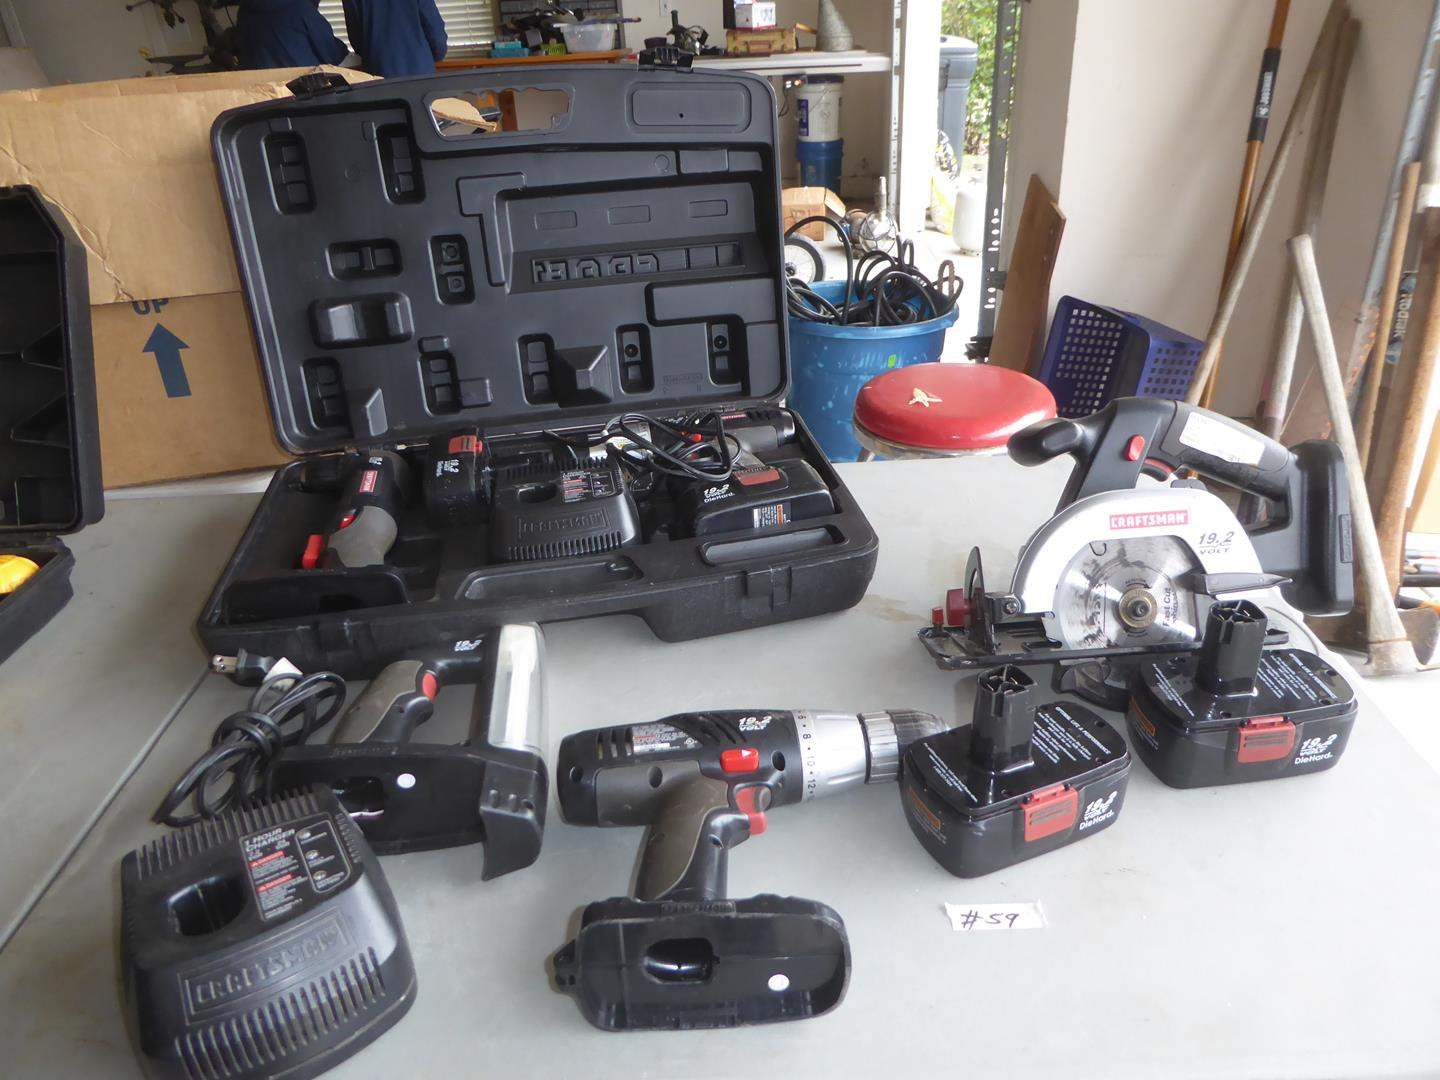 Lot # 59 - 'Craftsman' Drill Drivers, Light, Trim Saw, Batteries & Charger (main image)